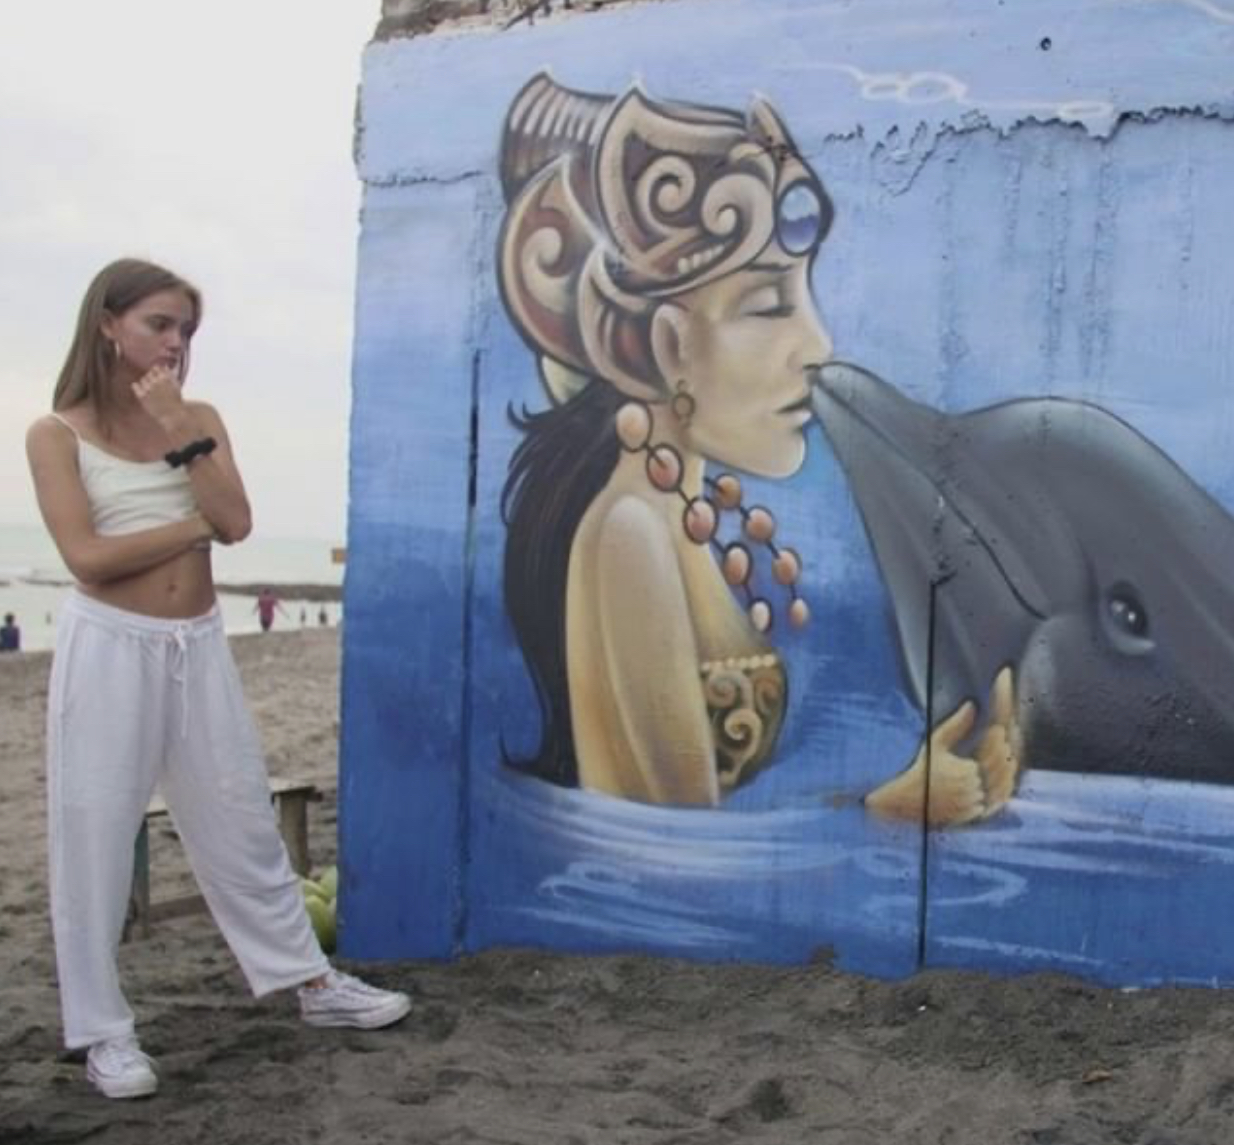 Inka Williams, Ambassador of our #FreeBaliDolphins campaign stands beside a #FreeBaliDolphins mural, Bali, Indonesia.